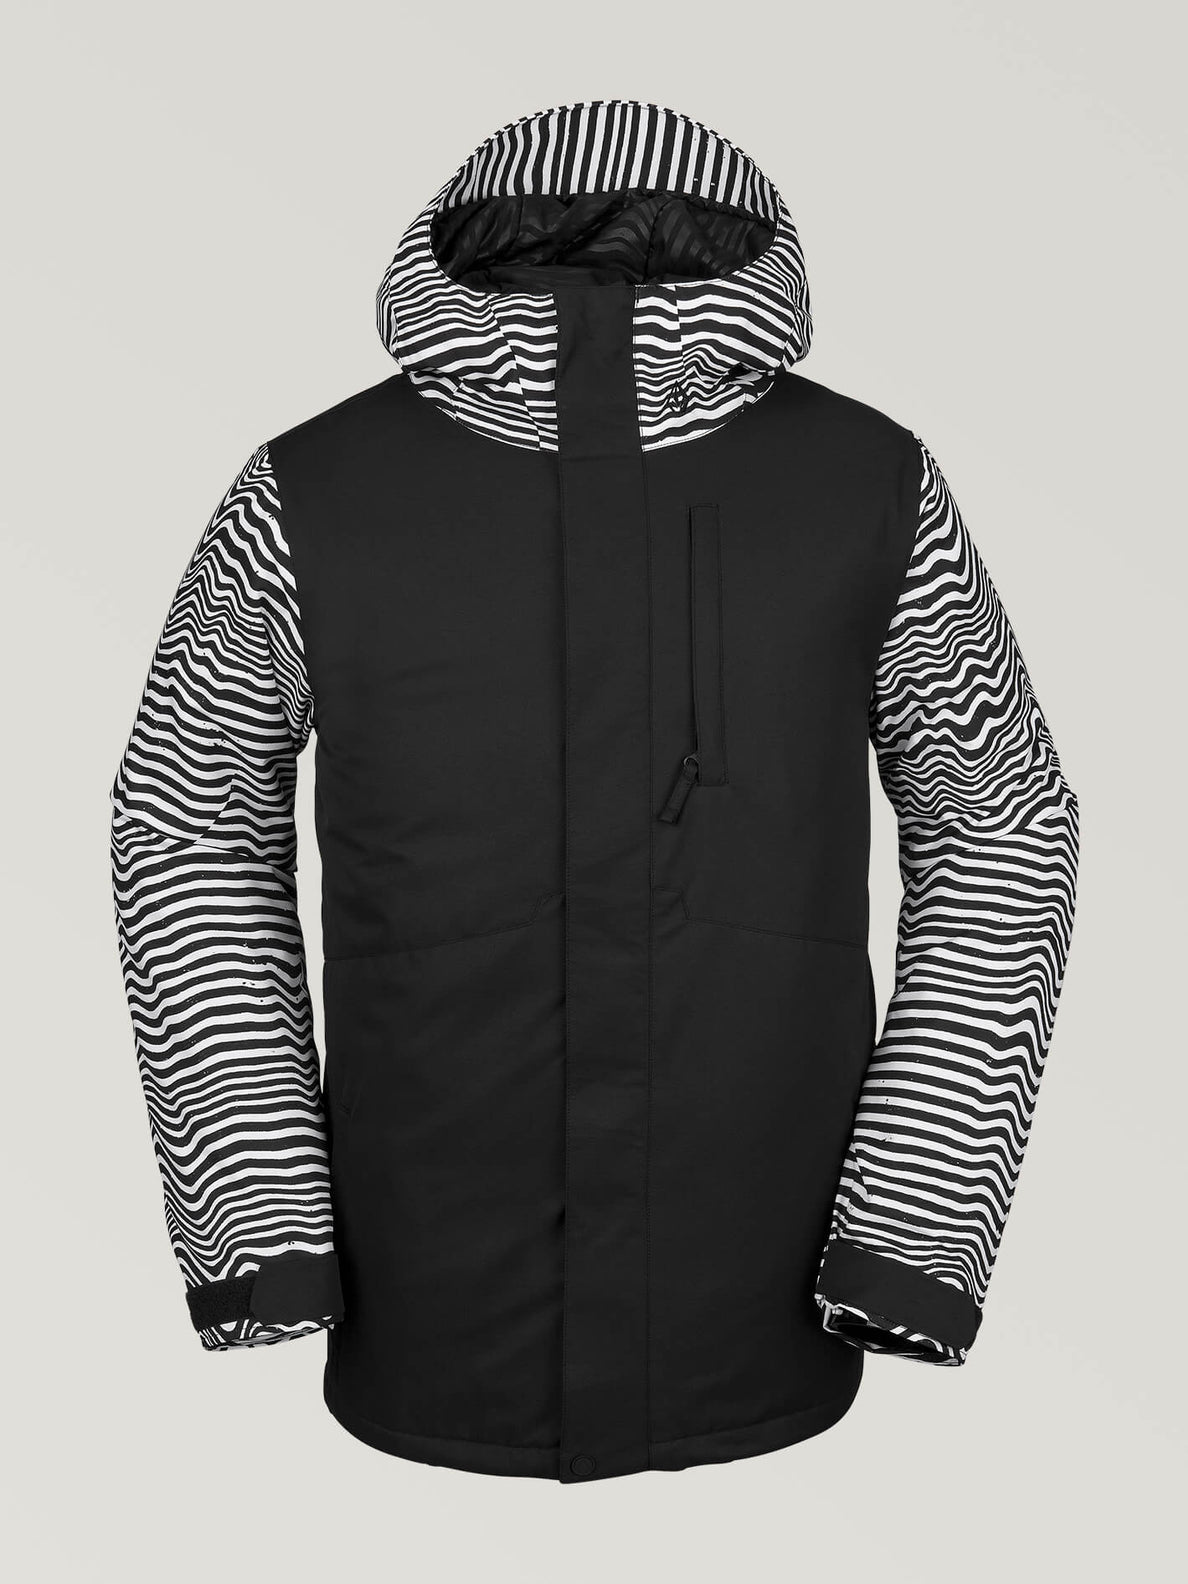 17Forty Ins Jacket Black Stripe (G0452010_BKS) [F]